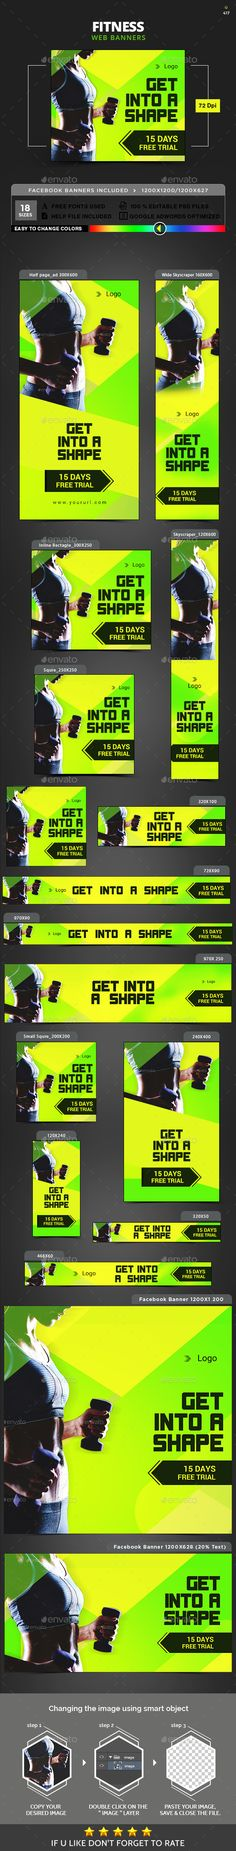 Fitness Banners - Banners & Ads Web Elements Download here : https://graphicriver.net/item/fitness-banners/20510718?s_rank=29&ref=Al-fatih #animated banner #banner pack #banner set #business #flat design #gif banner  #adwords #marketing #multi purpose #promotions #sales #template #web banner #ads #banner template  #ads template #premium design